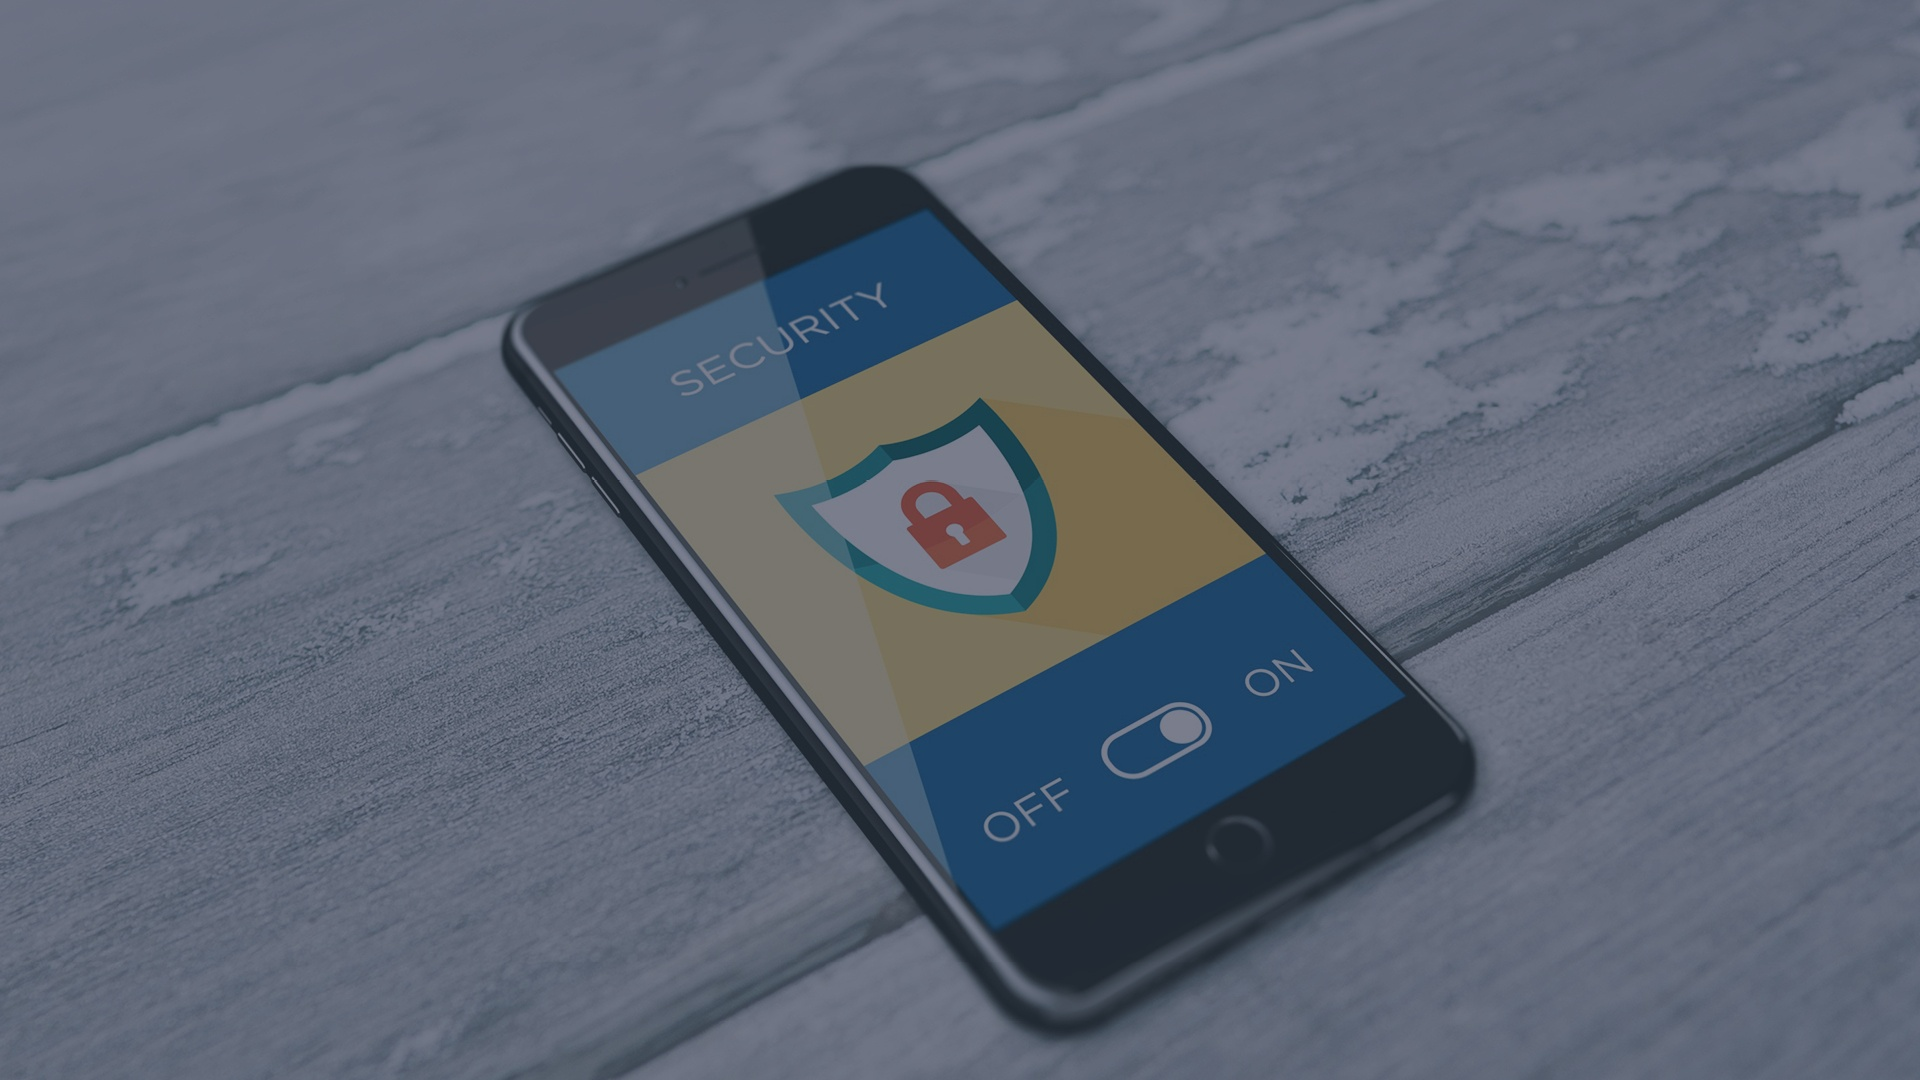 secure-communications-shown-on-mobile